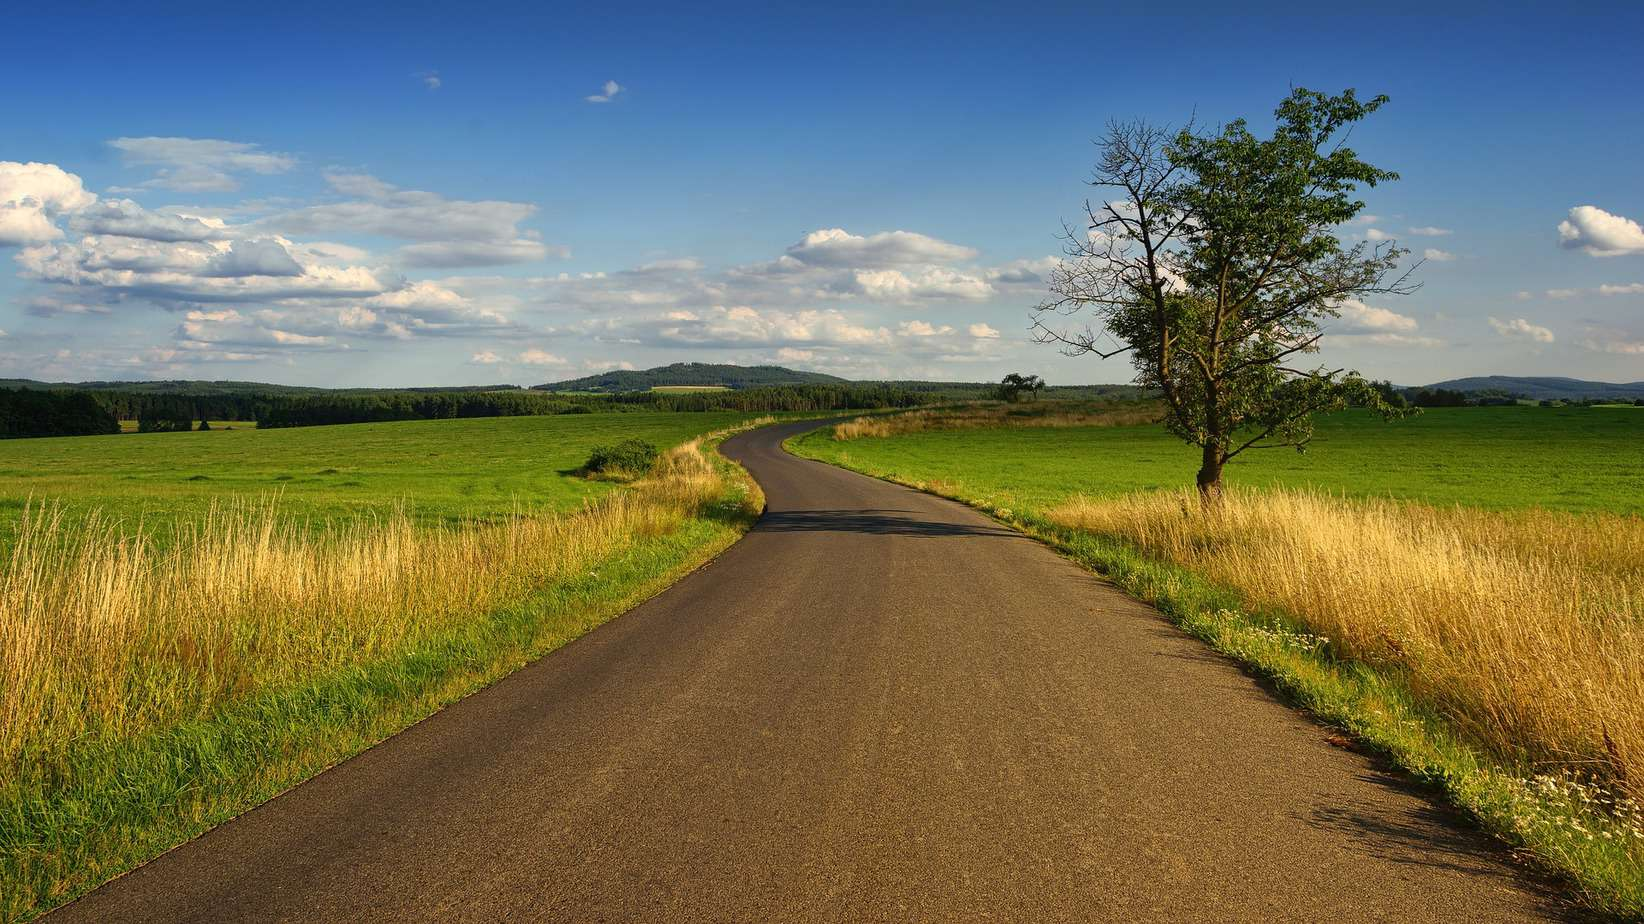 Sunny day, green fields, long and winding road